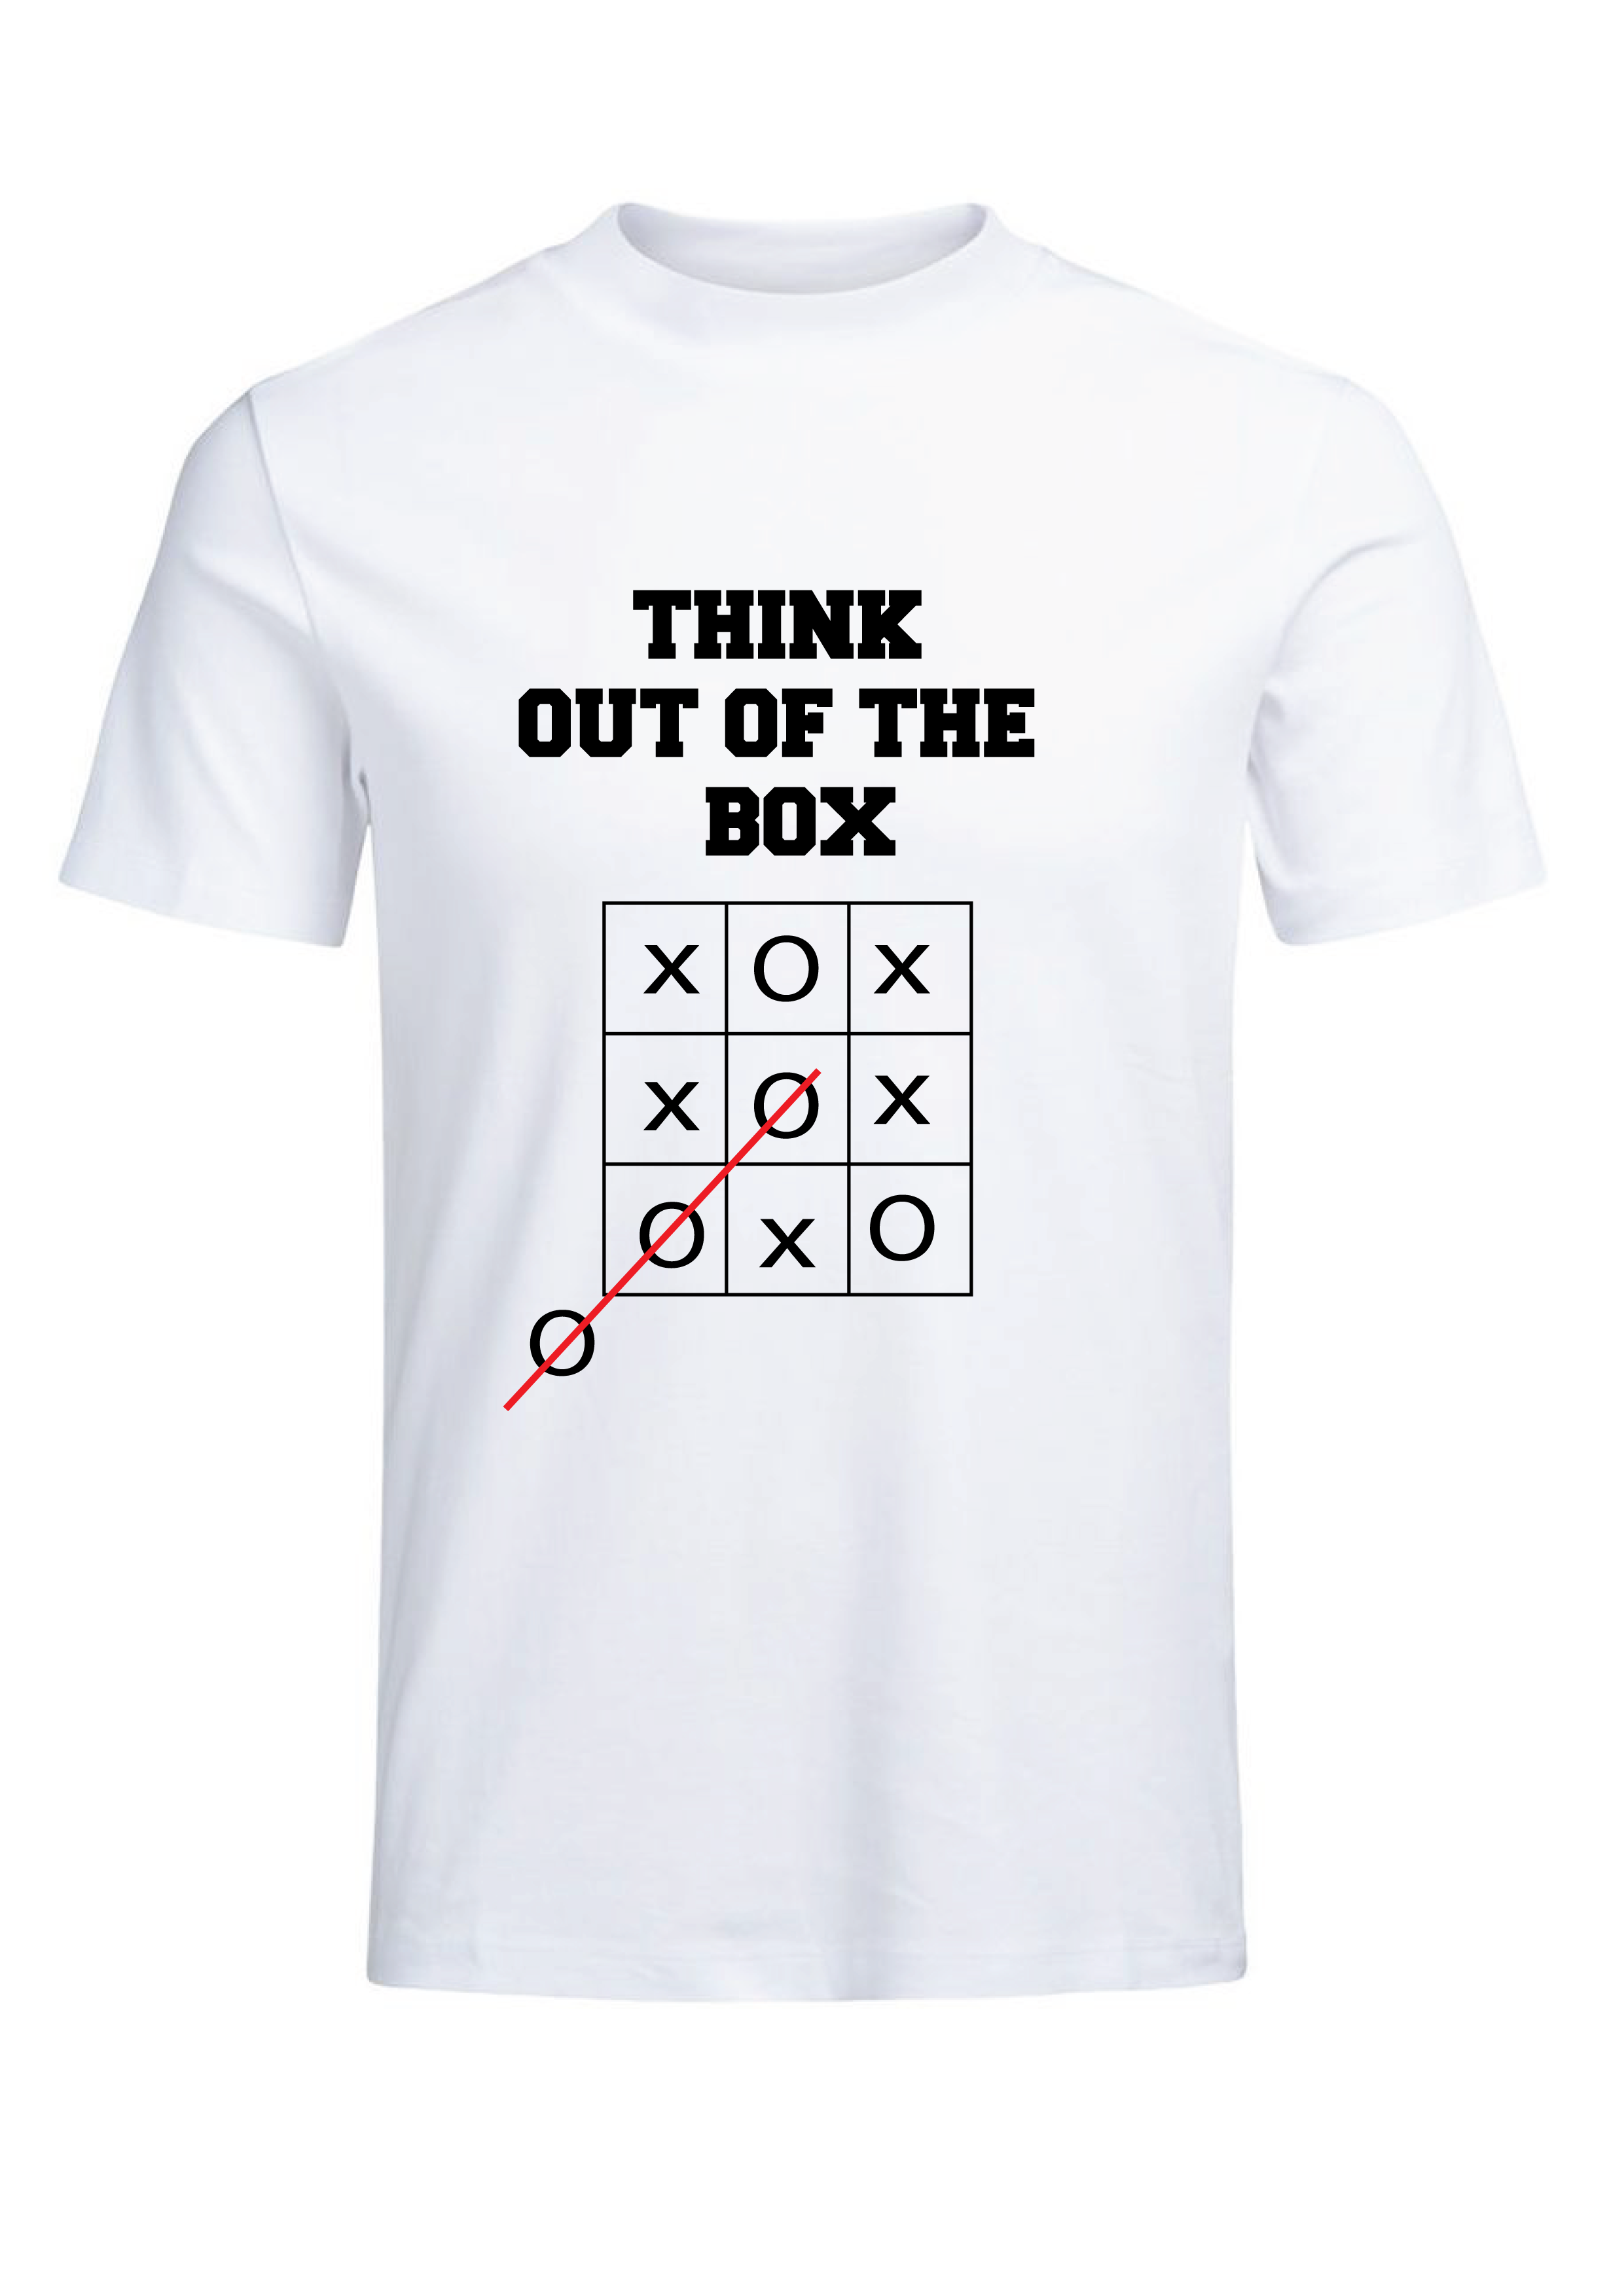 Think out of the box T-shirt for Men Slider Thumbnail 2/4